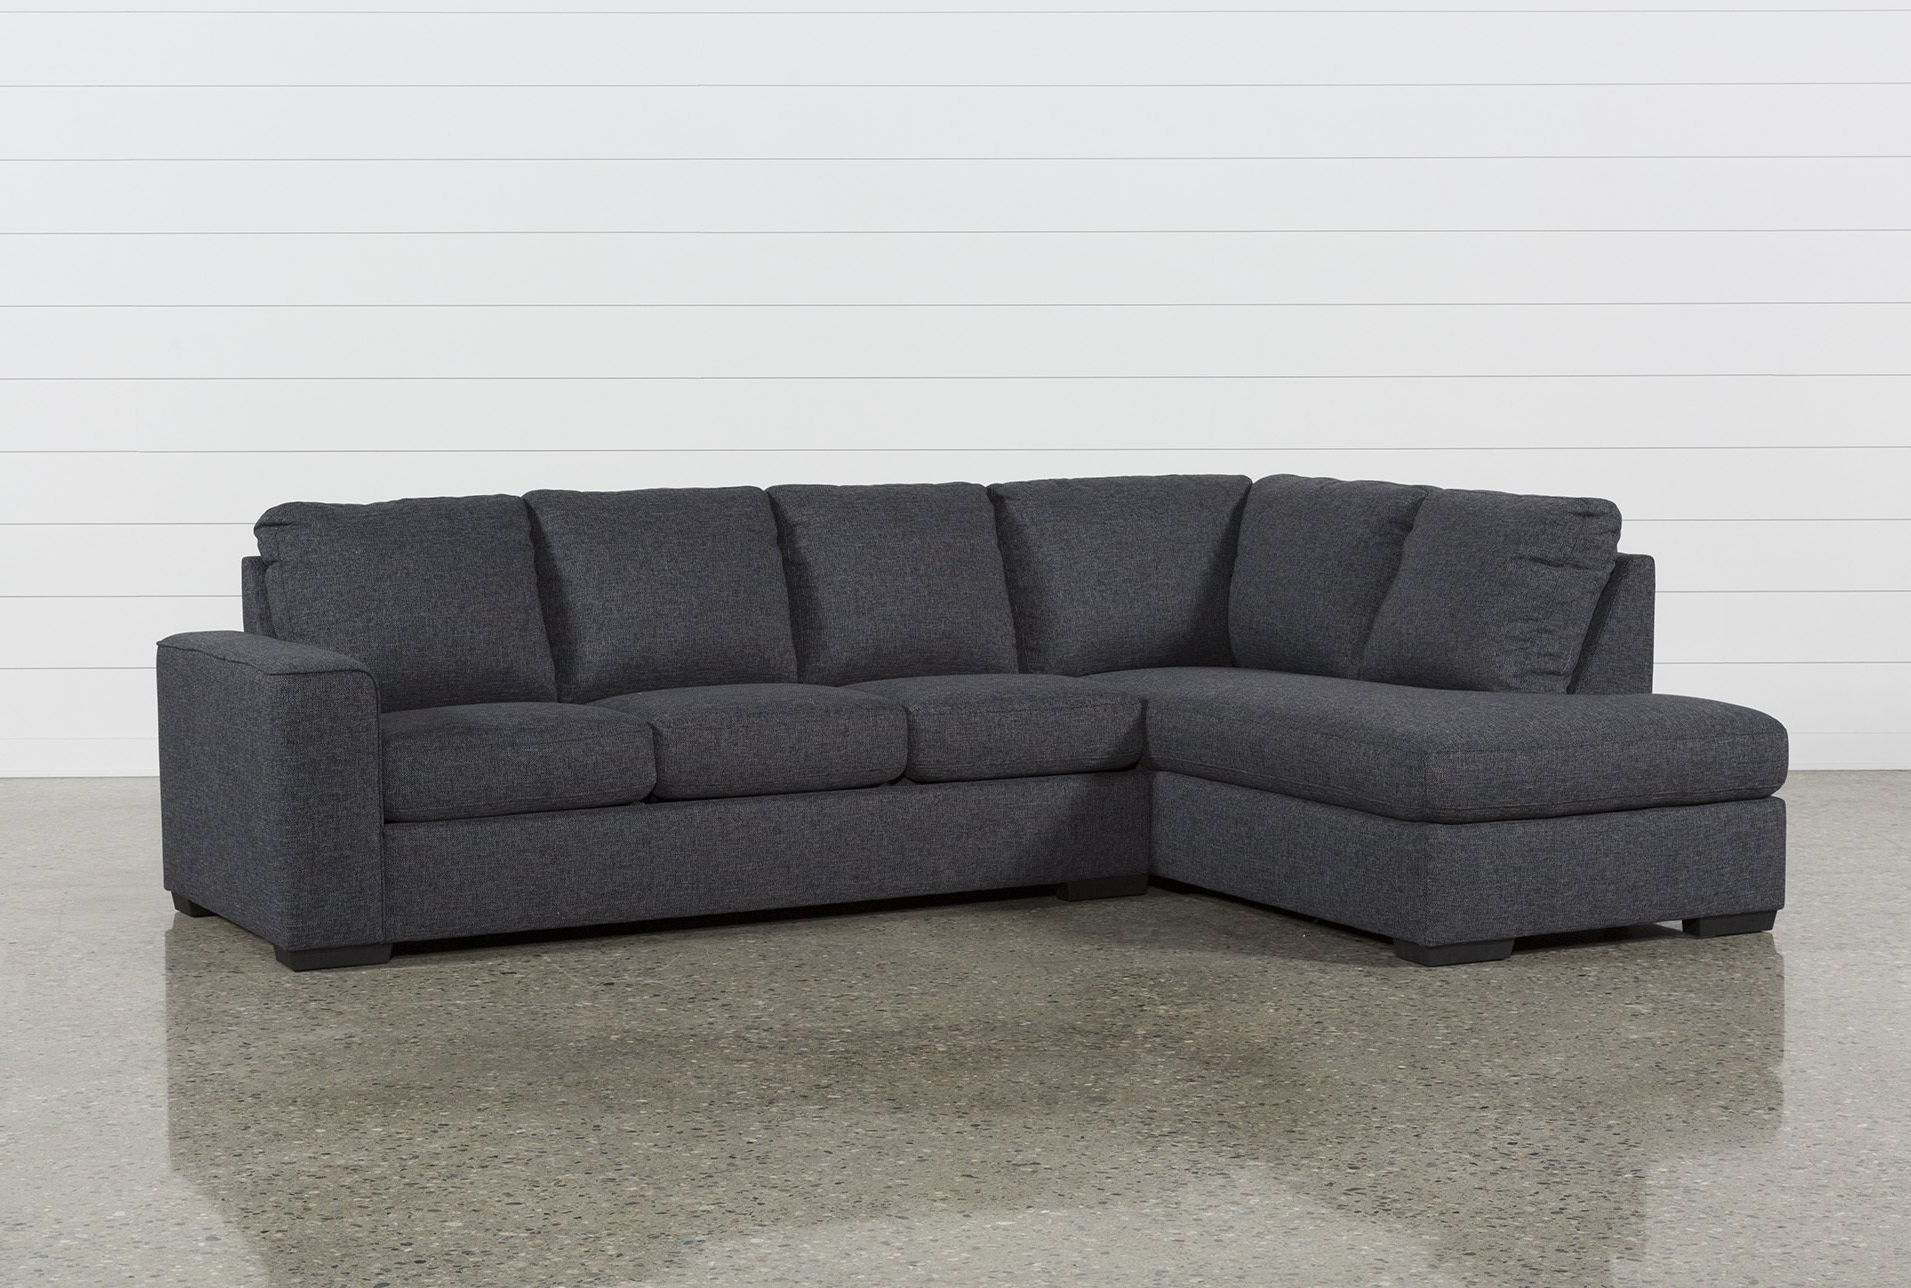 Widely Used Aquarius Dark Grey 2 Piece Sectionals With Laf Chaise Pertaining To Lucy Dark Grey 2 Piece Sectional W/laf Chaise (View 19 of 20)